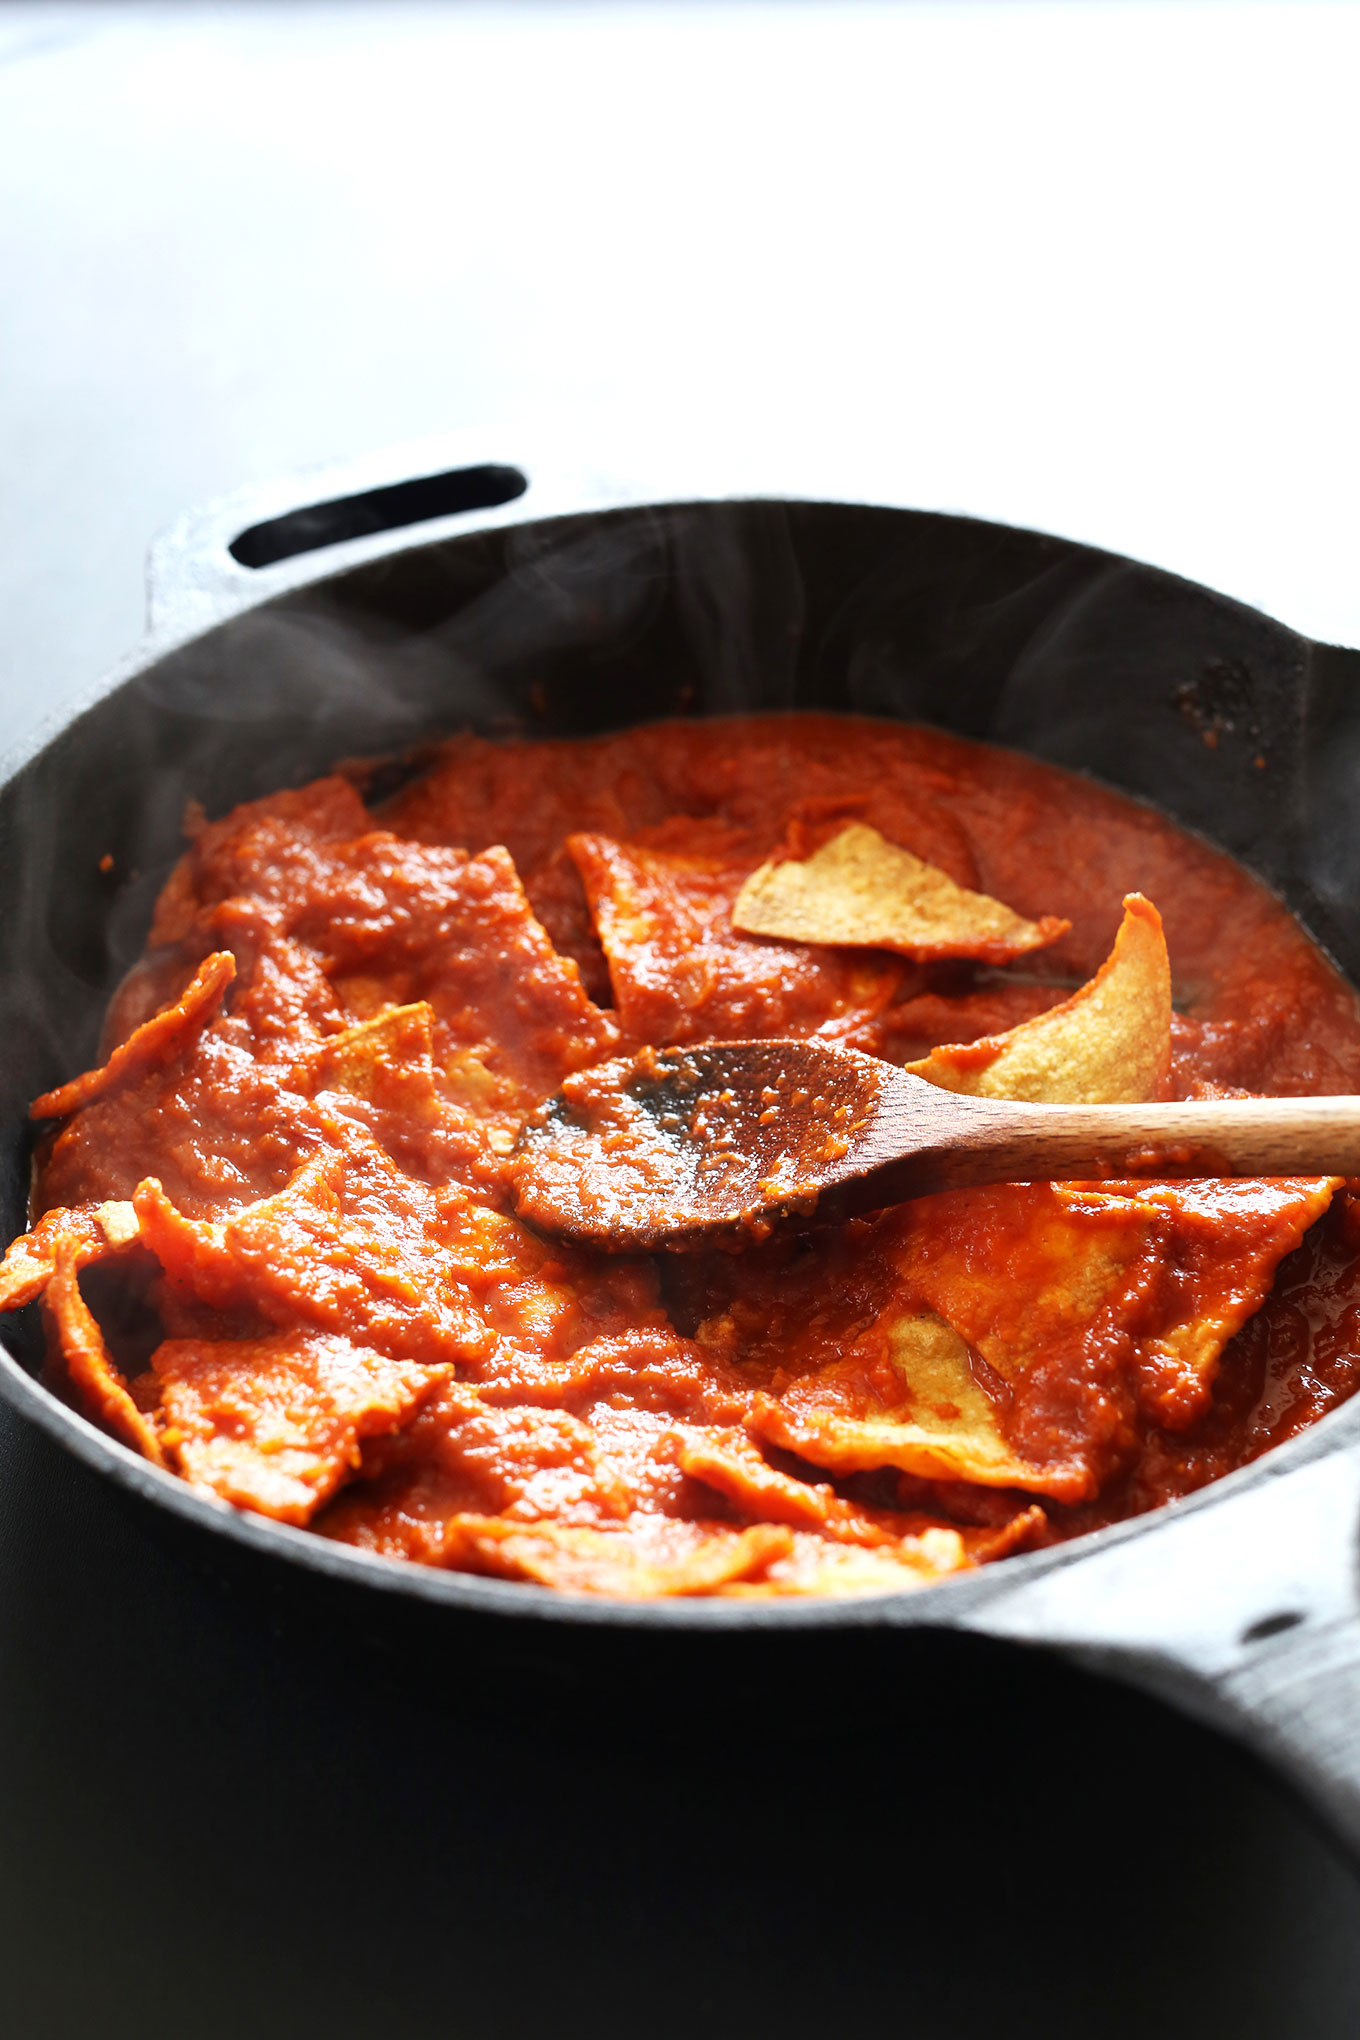 Making Tofu Chilaquiles in a cast-iron skillet